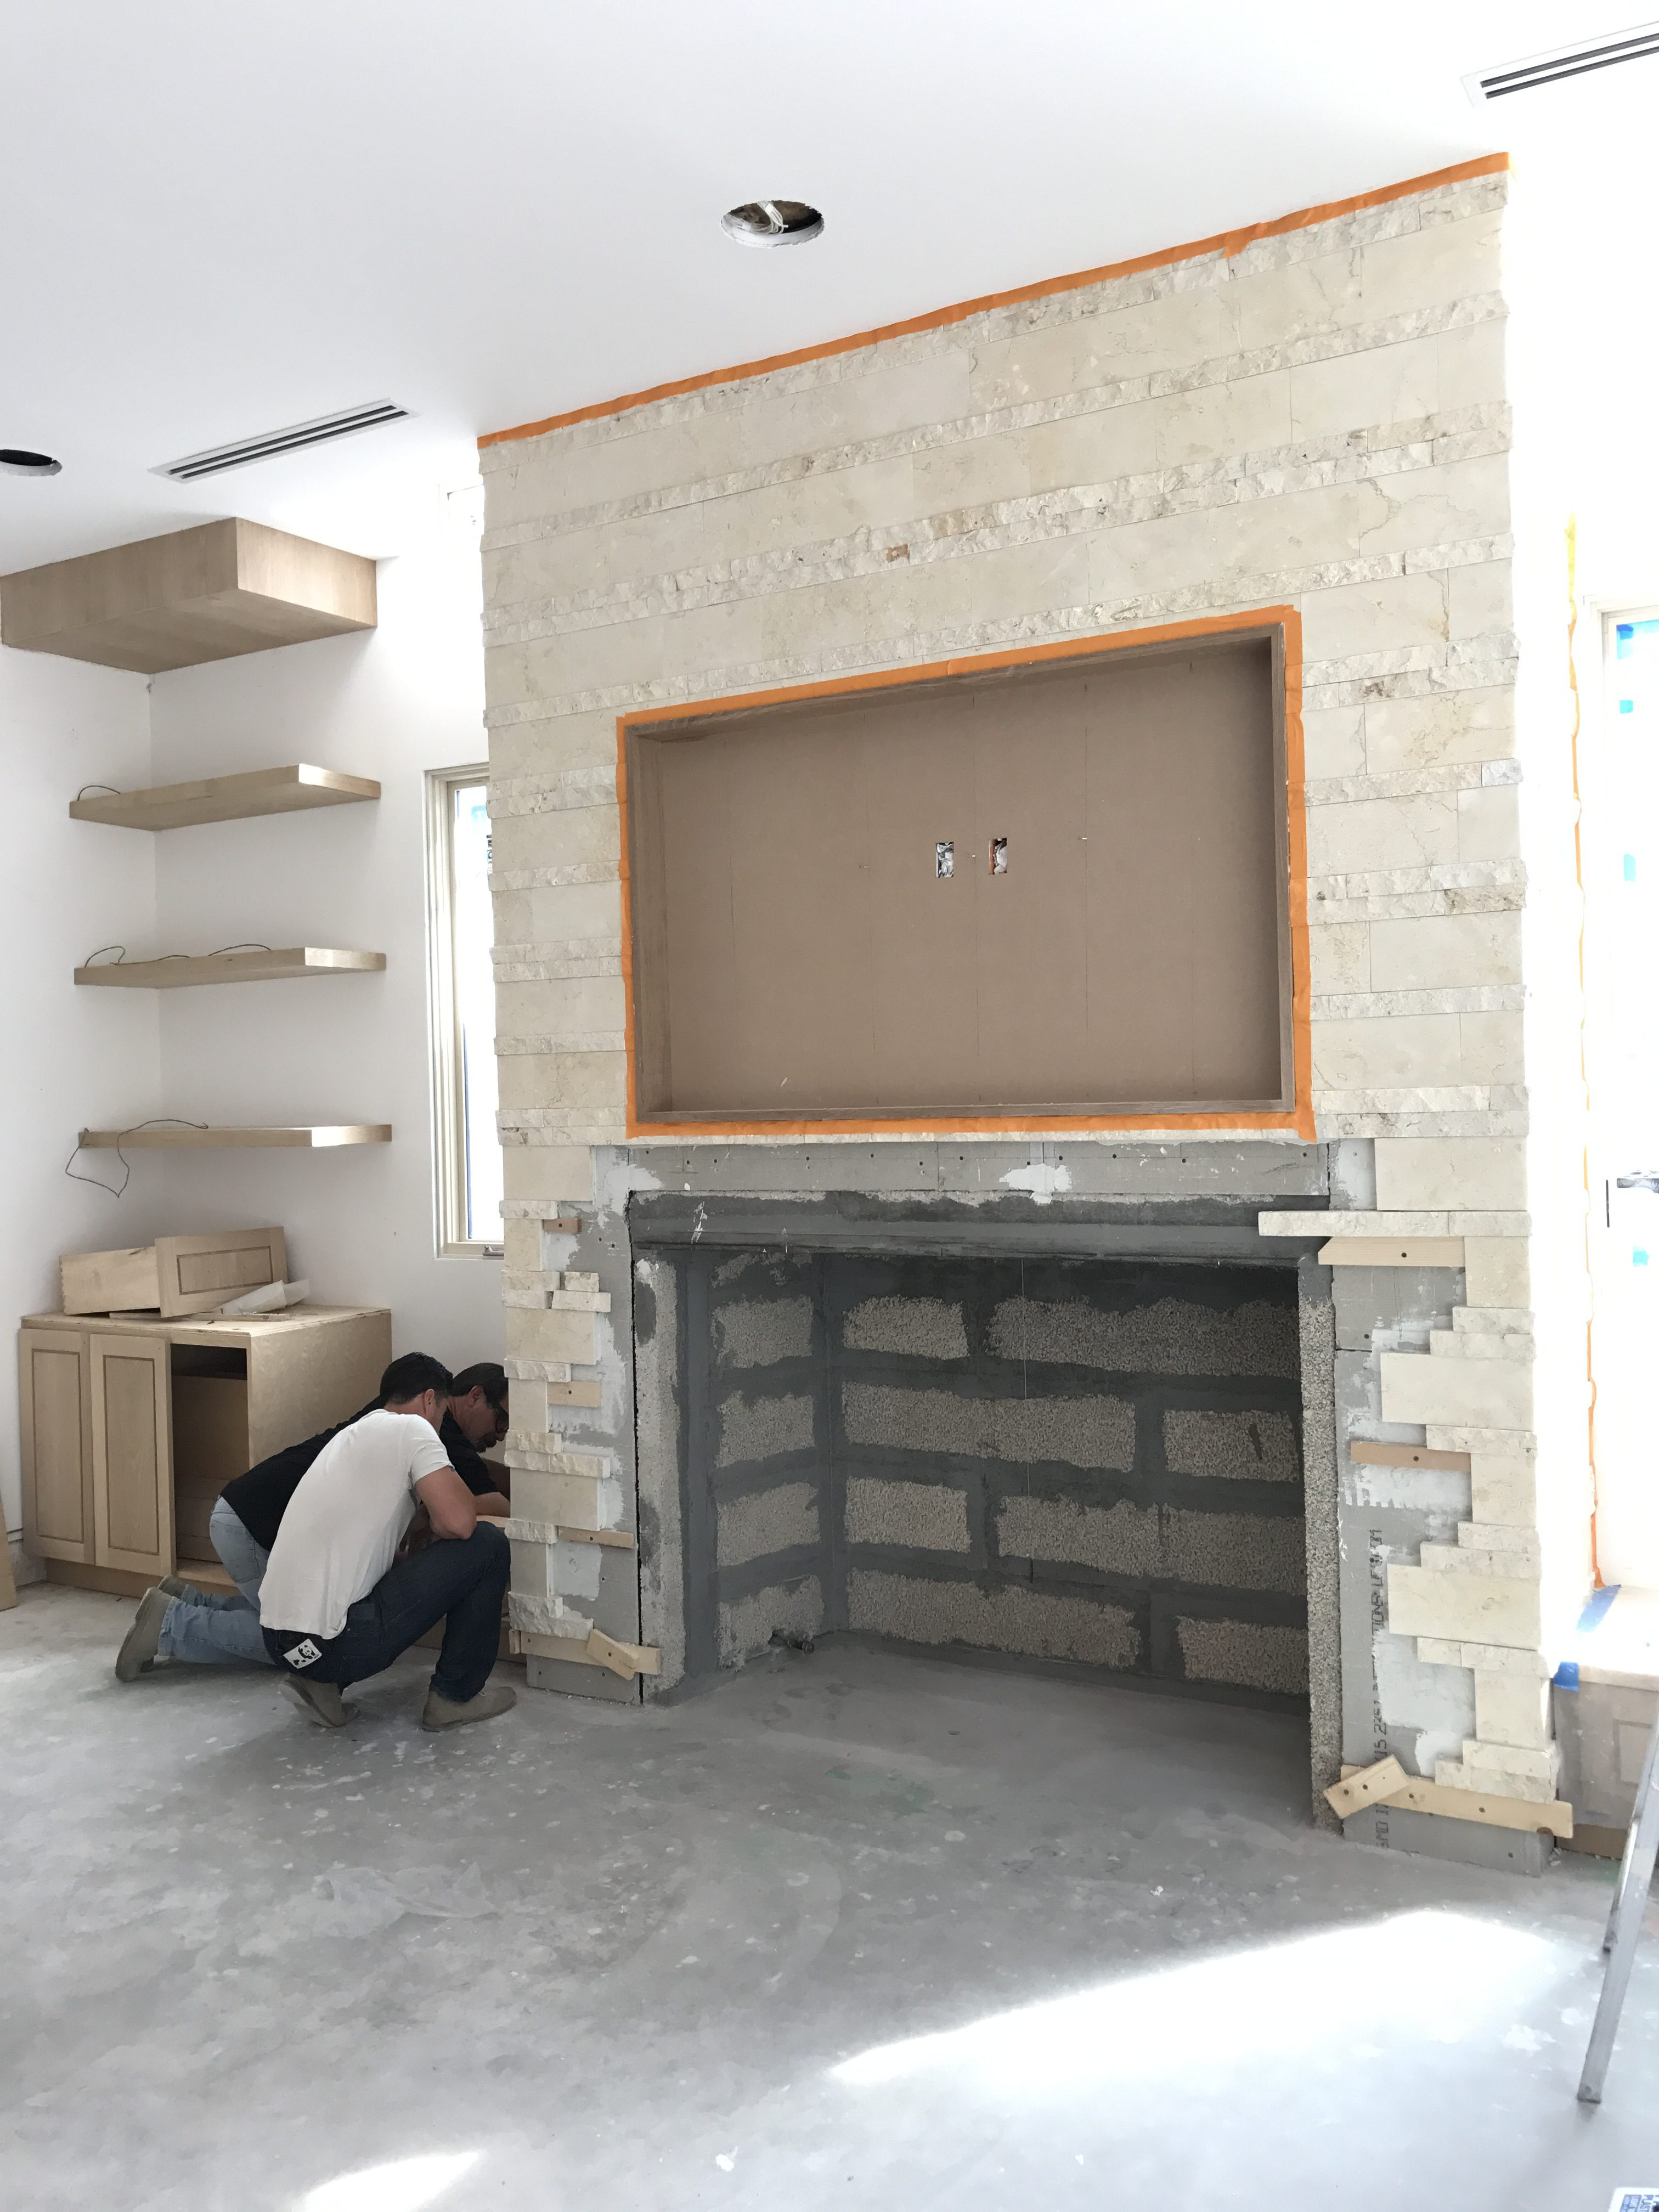 How to Know When It s Time for a Fireplace Remodel